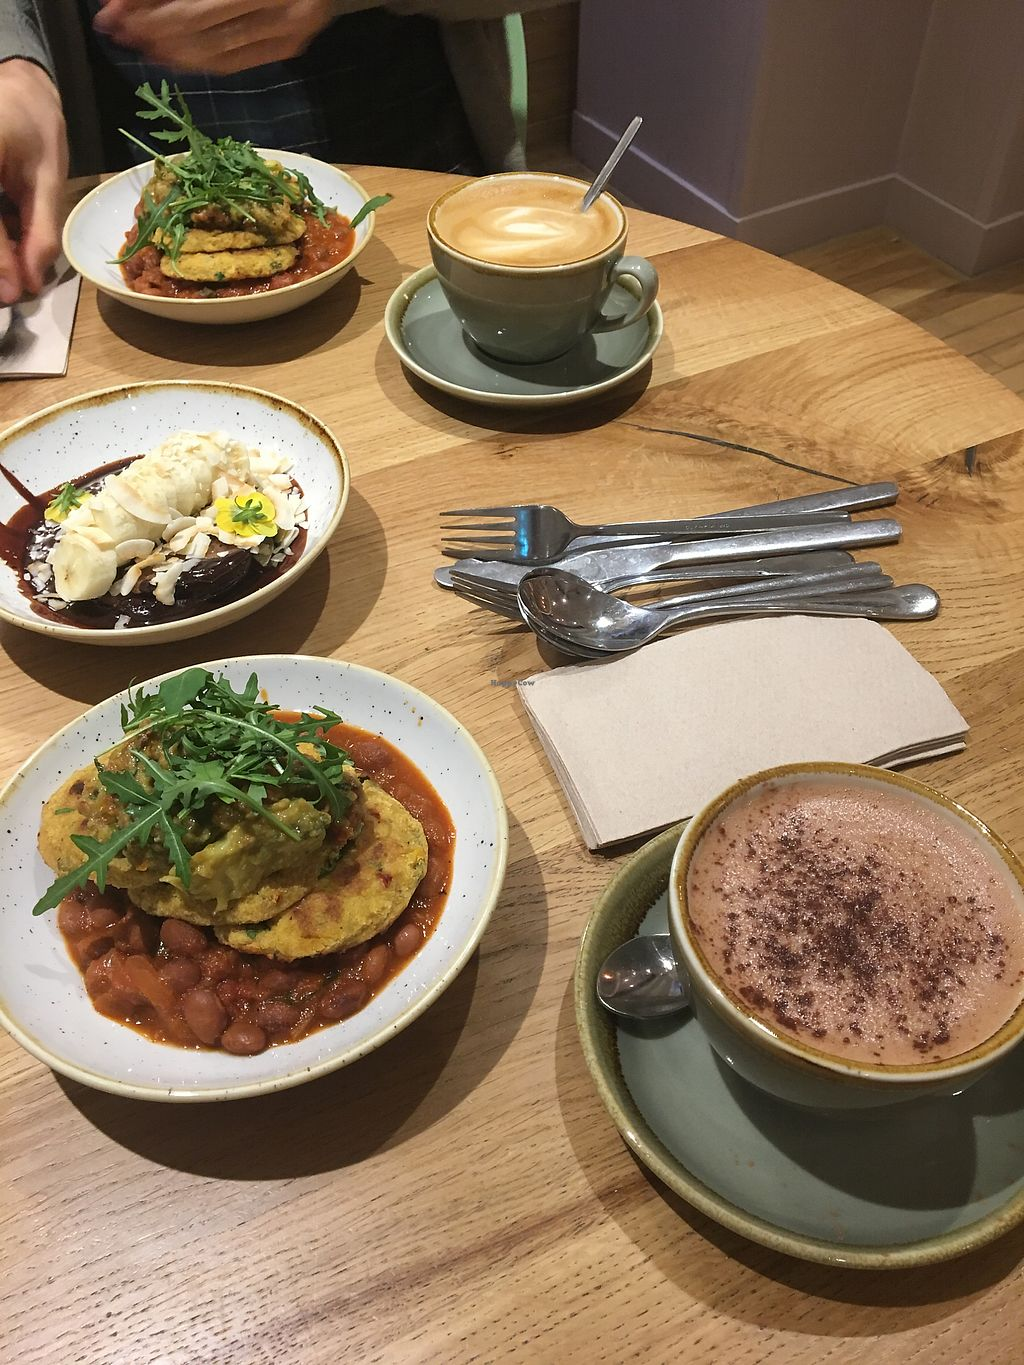 "Photo of Deliciously Ella - Weighhouse  by <a href=""/members/profile/dancart3r"">dancart3r</a> <br/>Pancakes & fritters  <br/> February 25, 2018  - <a href='/contact/abuse/image/82980/363737'>Report</a>"